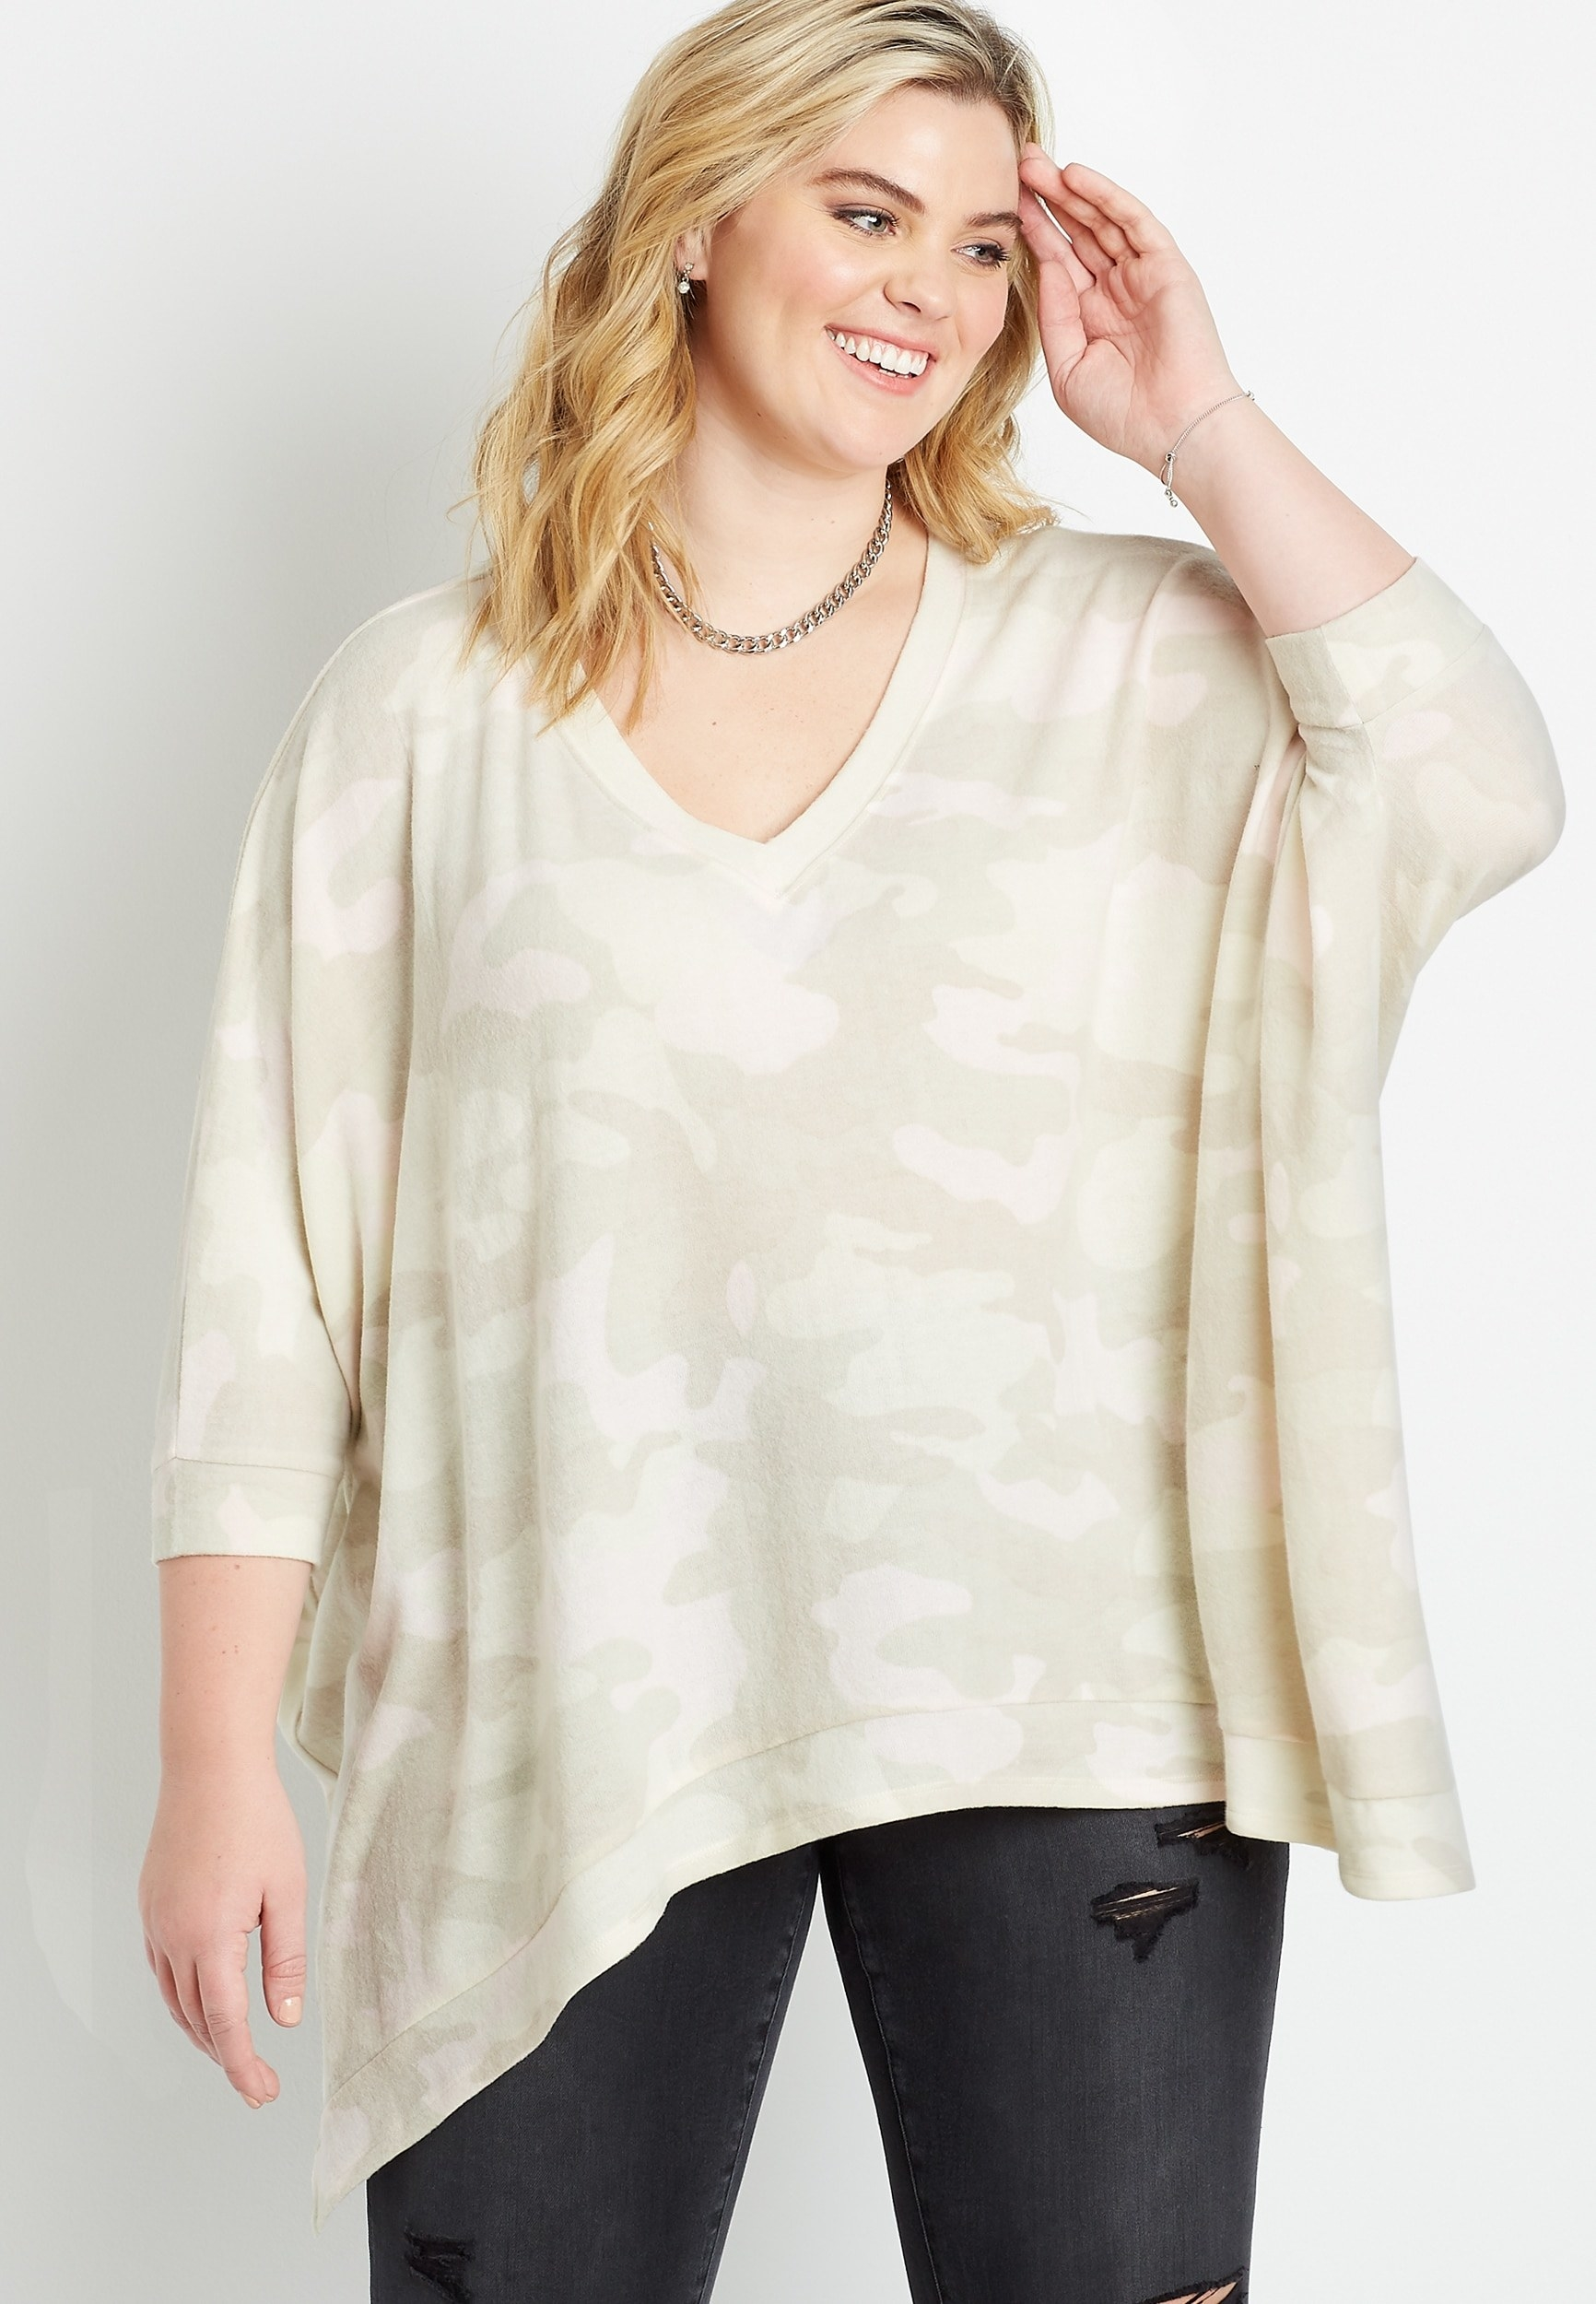 model wearing the poncho in white and beige camo